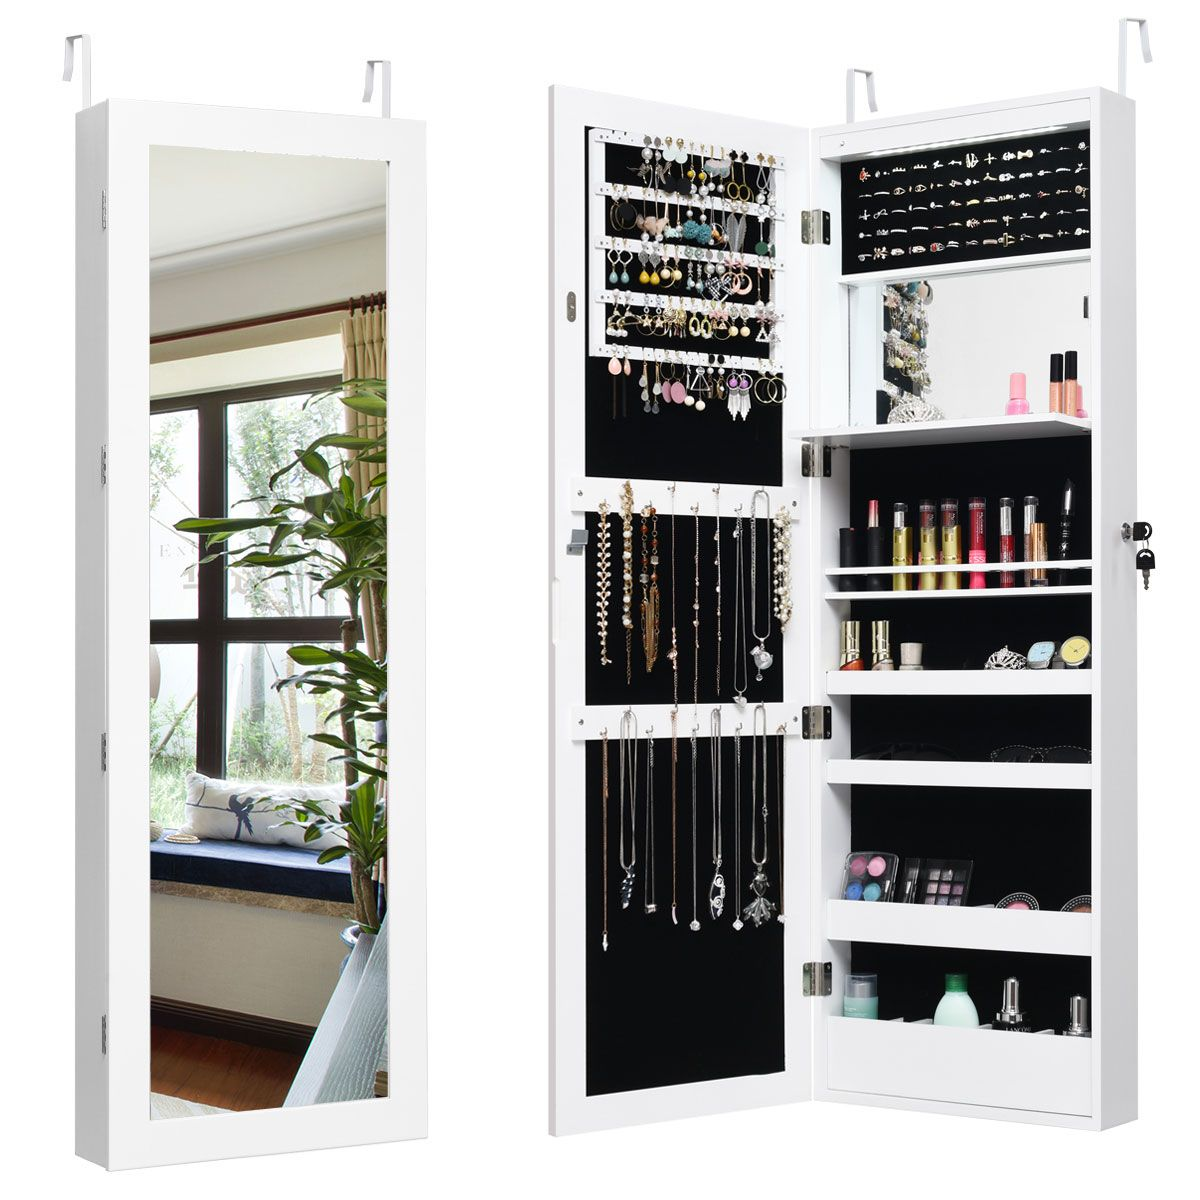 Costway Lockable Wall Door Mounted Mirror Jewelry Cabinet Armoire Organizer W Led Lights Walmart Com In 2020 Wall Mounted Jewelry Armoire Mirror Jewellery Cabinet Jewelry Mirror